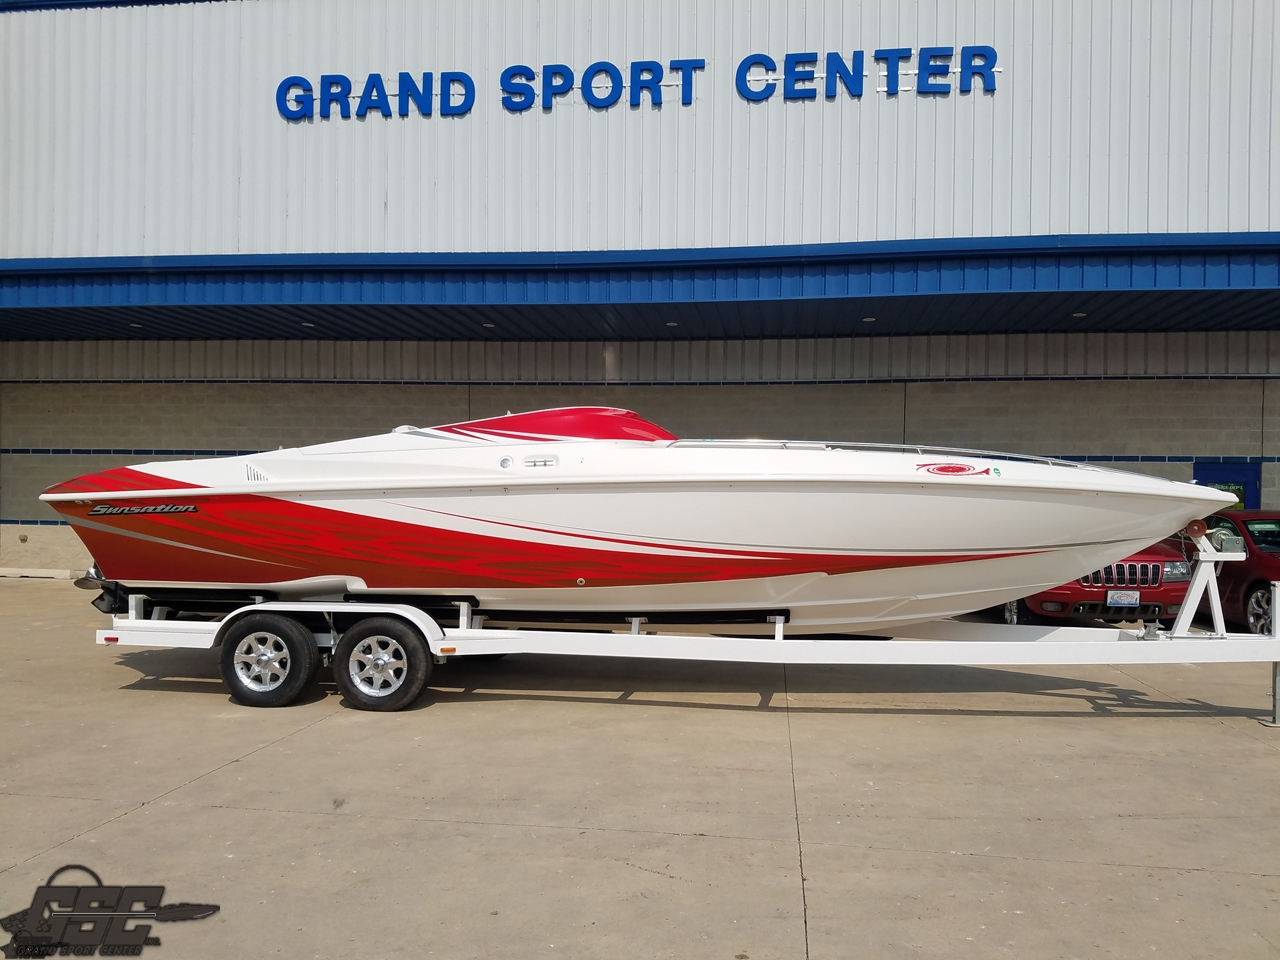 2007 Sunsation 288 Midcabin. SOLD in 24 hrs!